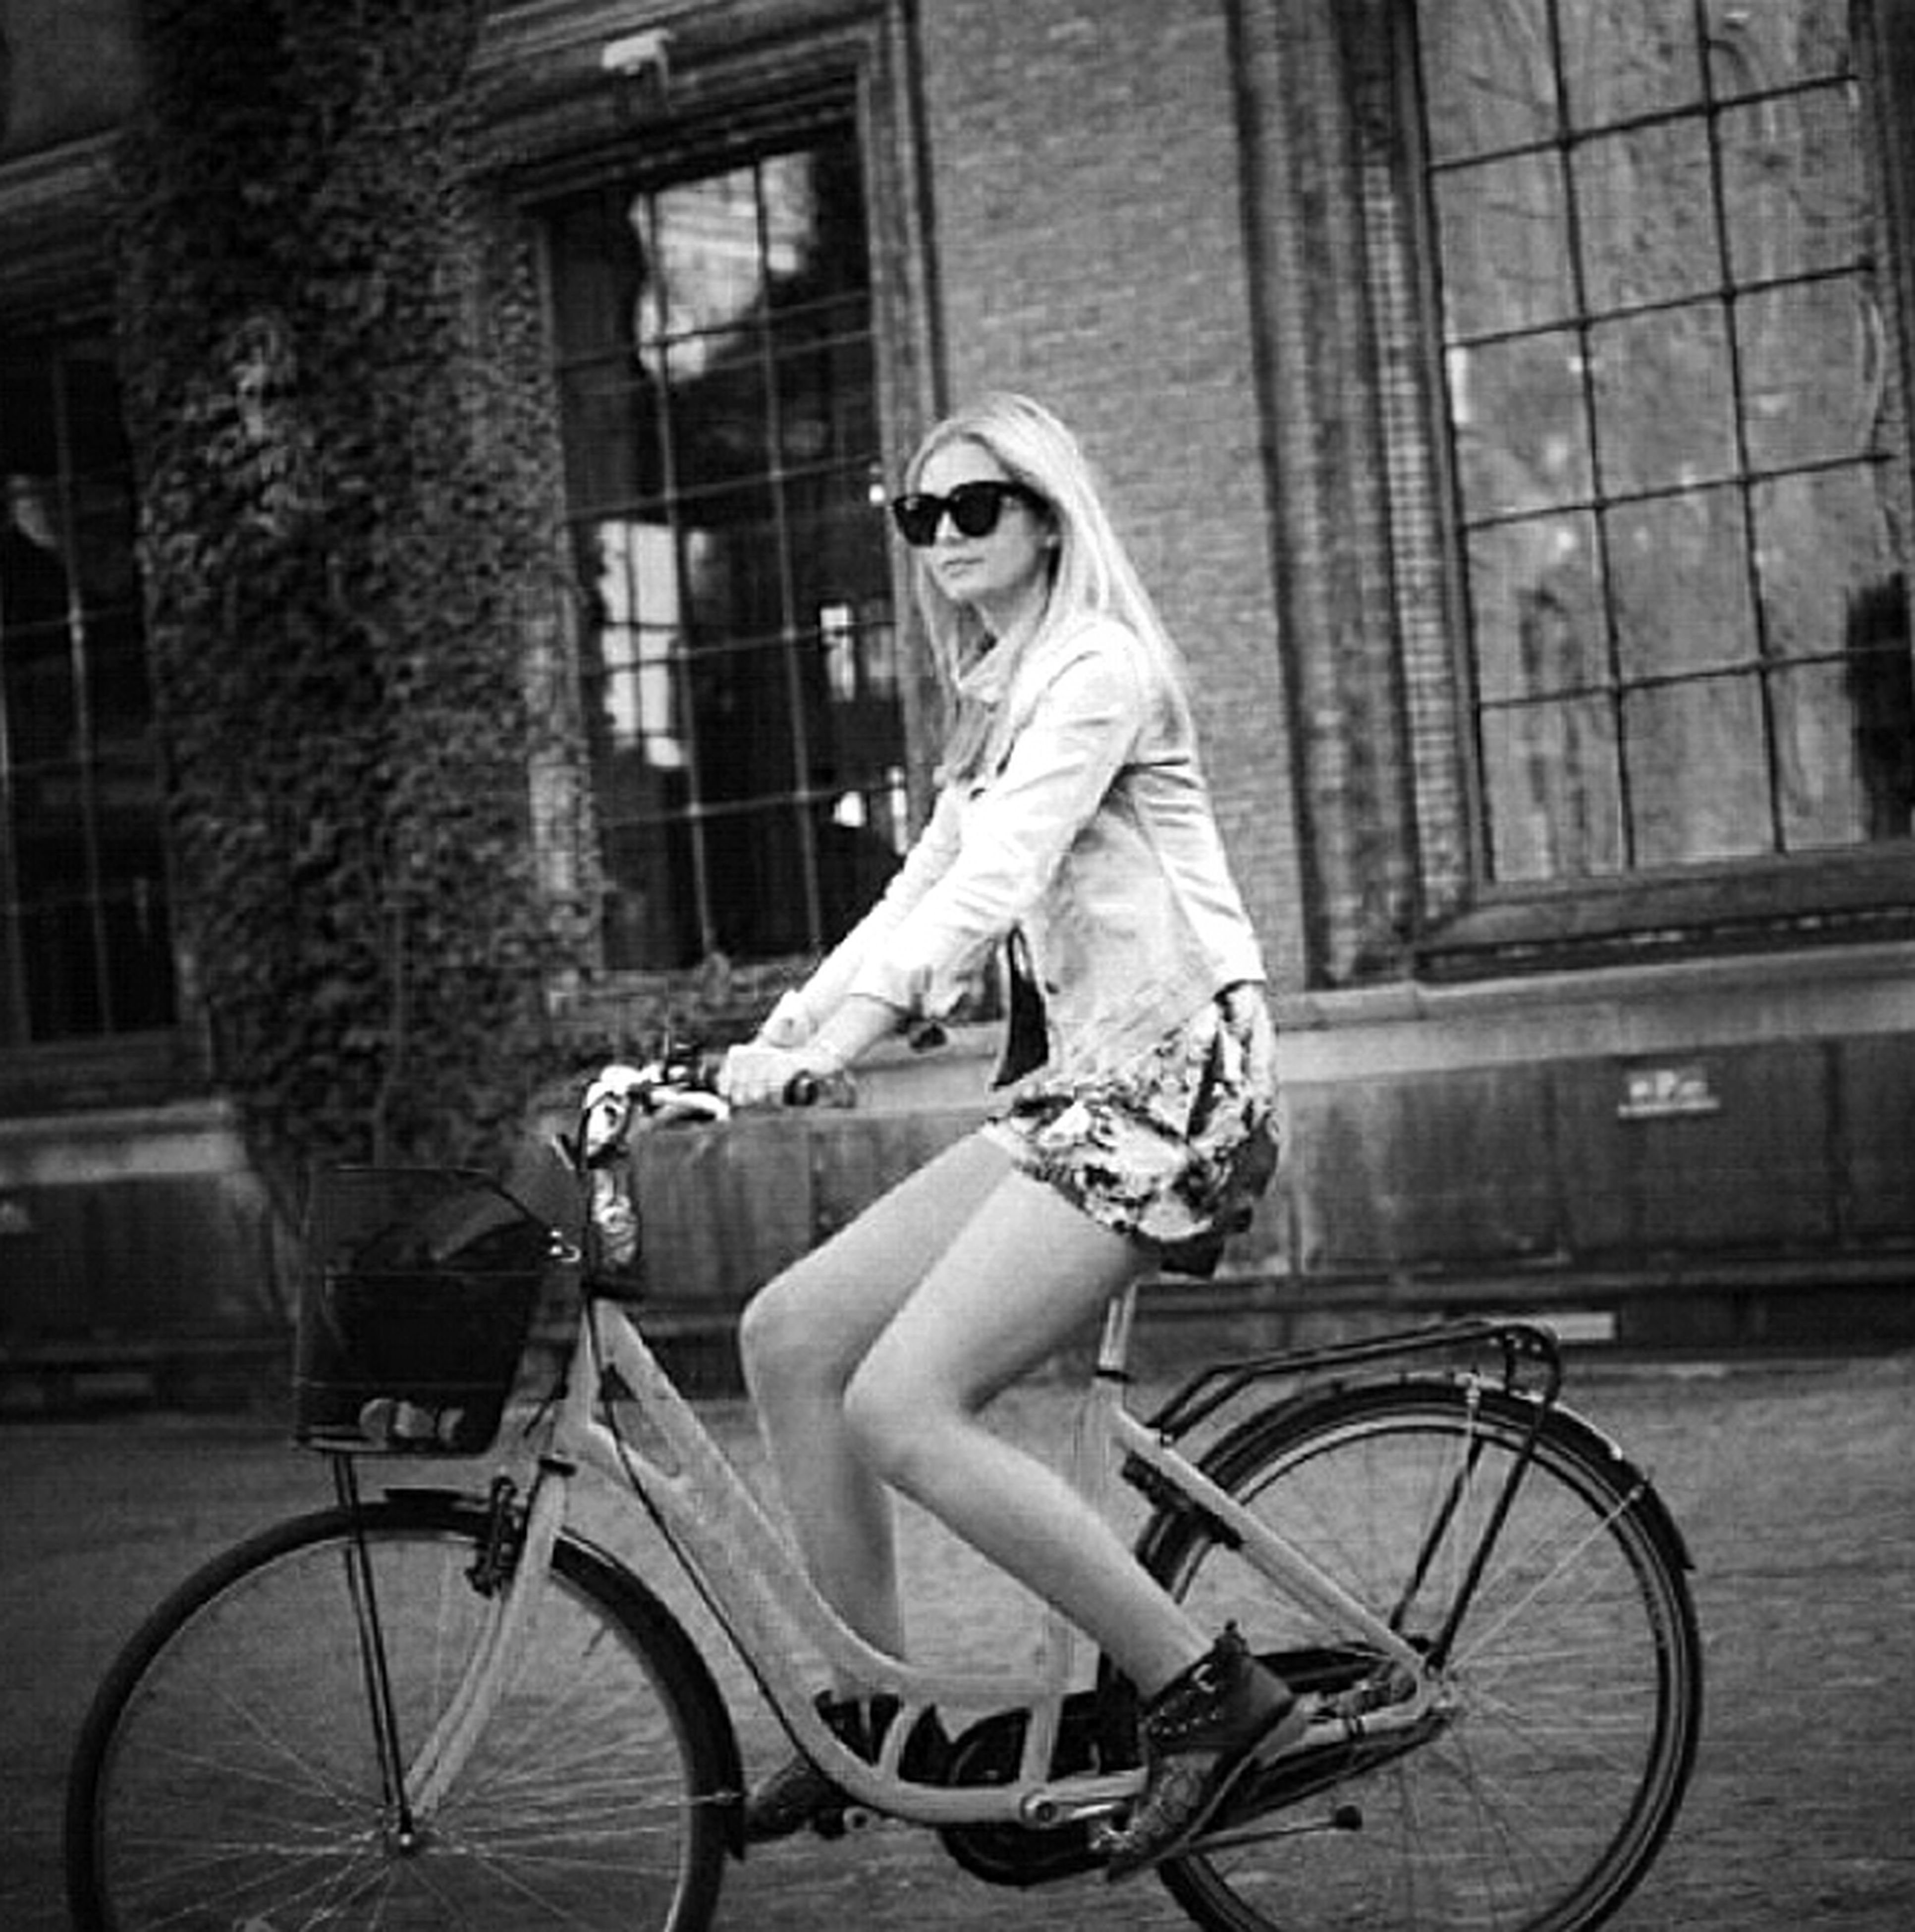 bicycle, mode of transport, building exterior, land vehicle, transportation, architecture, built structure, full length, lifestyles, side view, casual clothing, leisure activity, young adult, riding, sitting, window, street, city